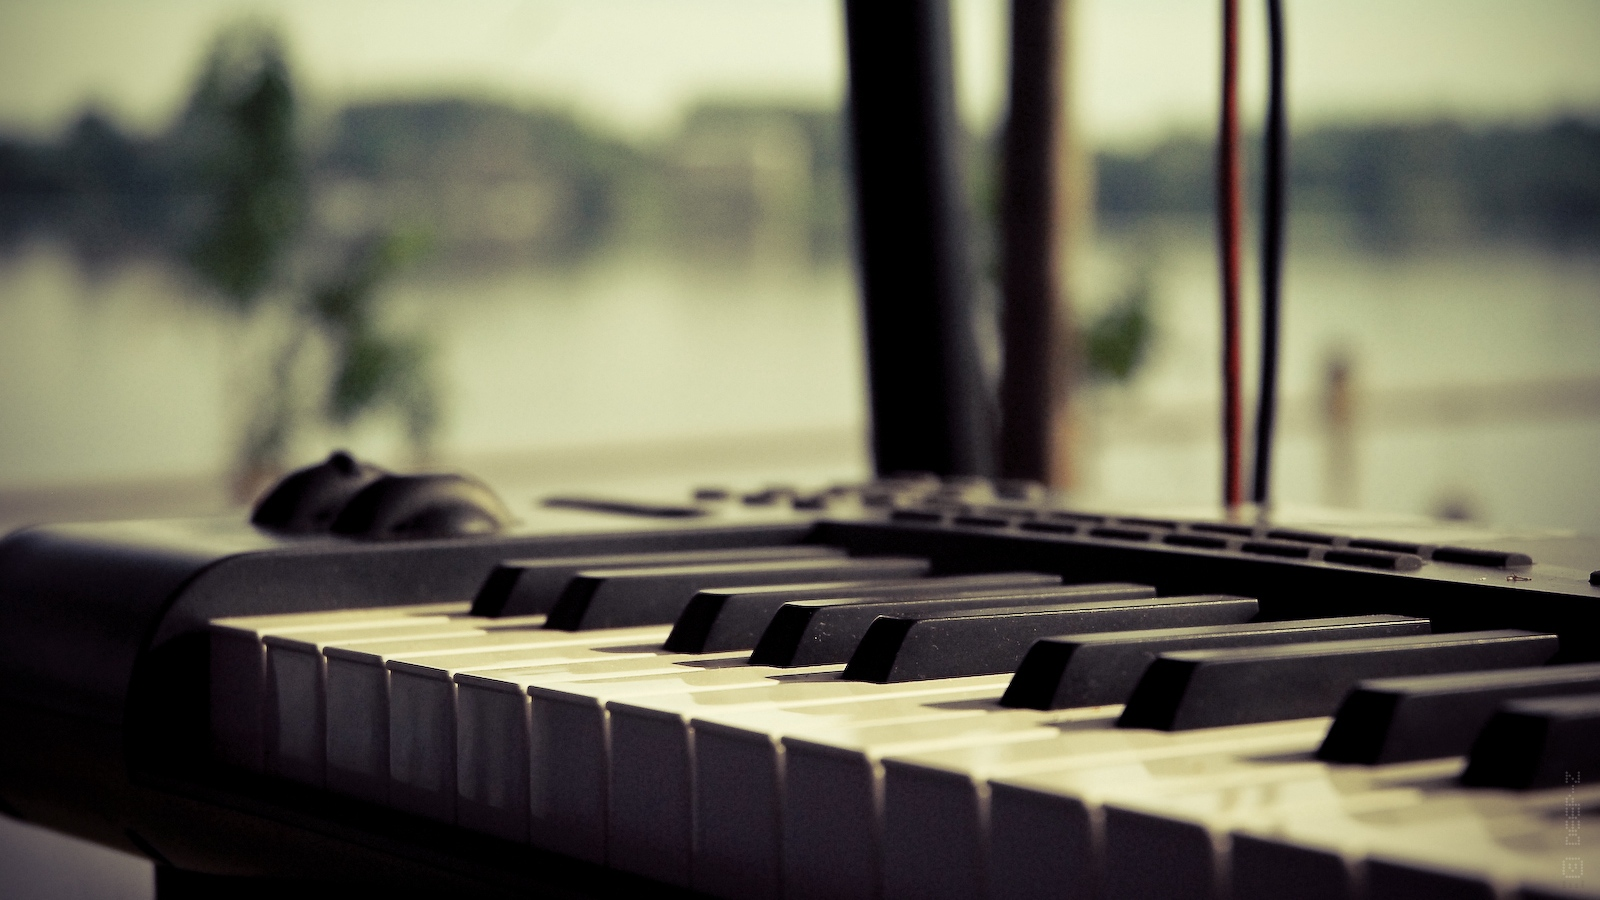 Download wallpaper 1600x900 keyboard piano synthesizer 1600x900